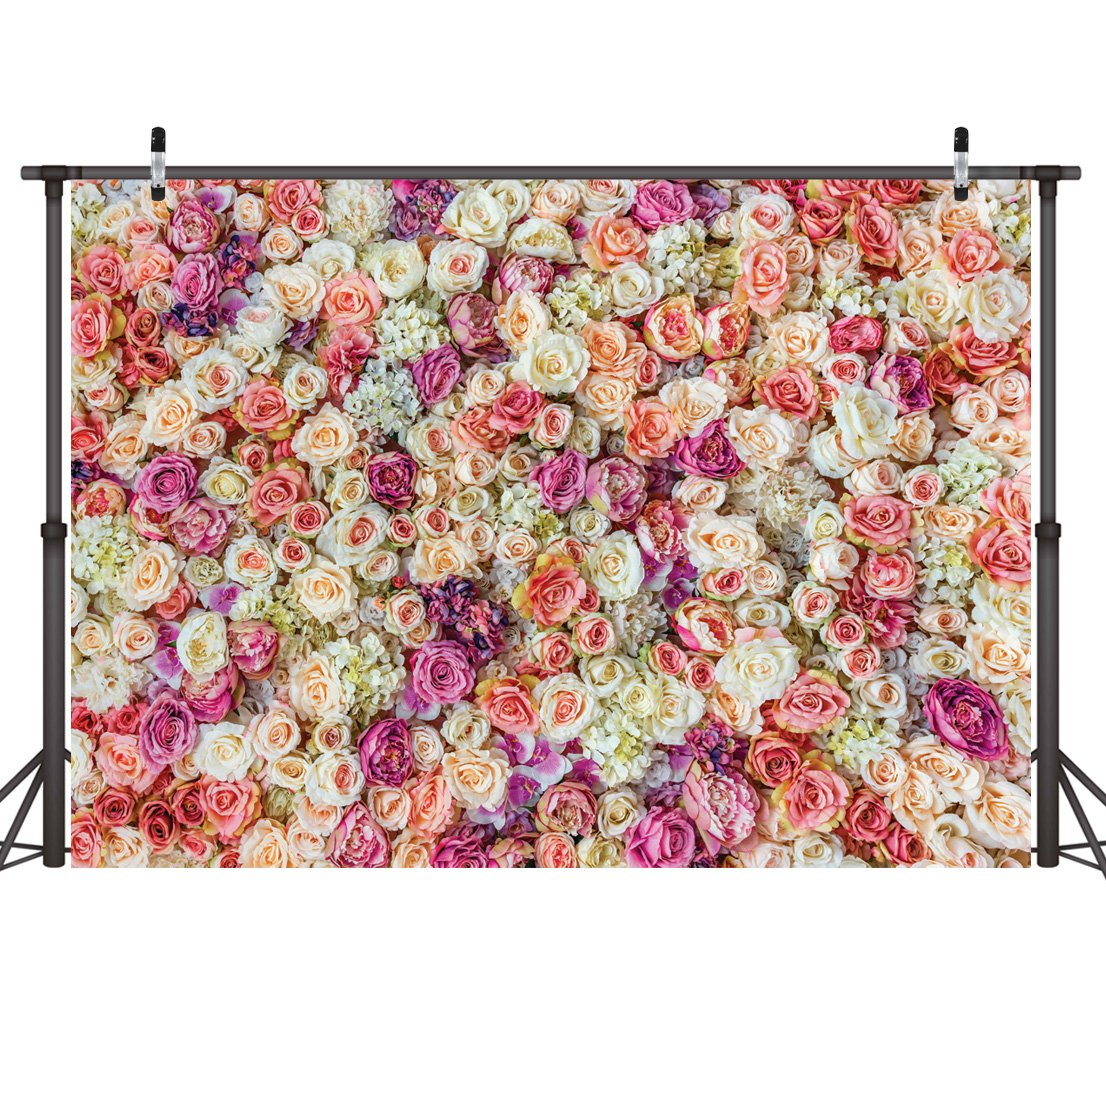 LYWYGG 8X6FT Flower Wall Backdrop Blooming Fresh Rose Flowers Wedding Decoration Background Party Backdrop Flowers Birthday Backdrop New Baby Photoshoot Backdrop CP-48-0806